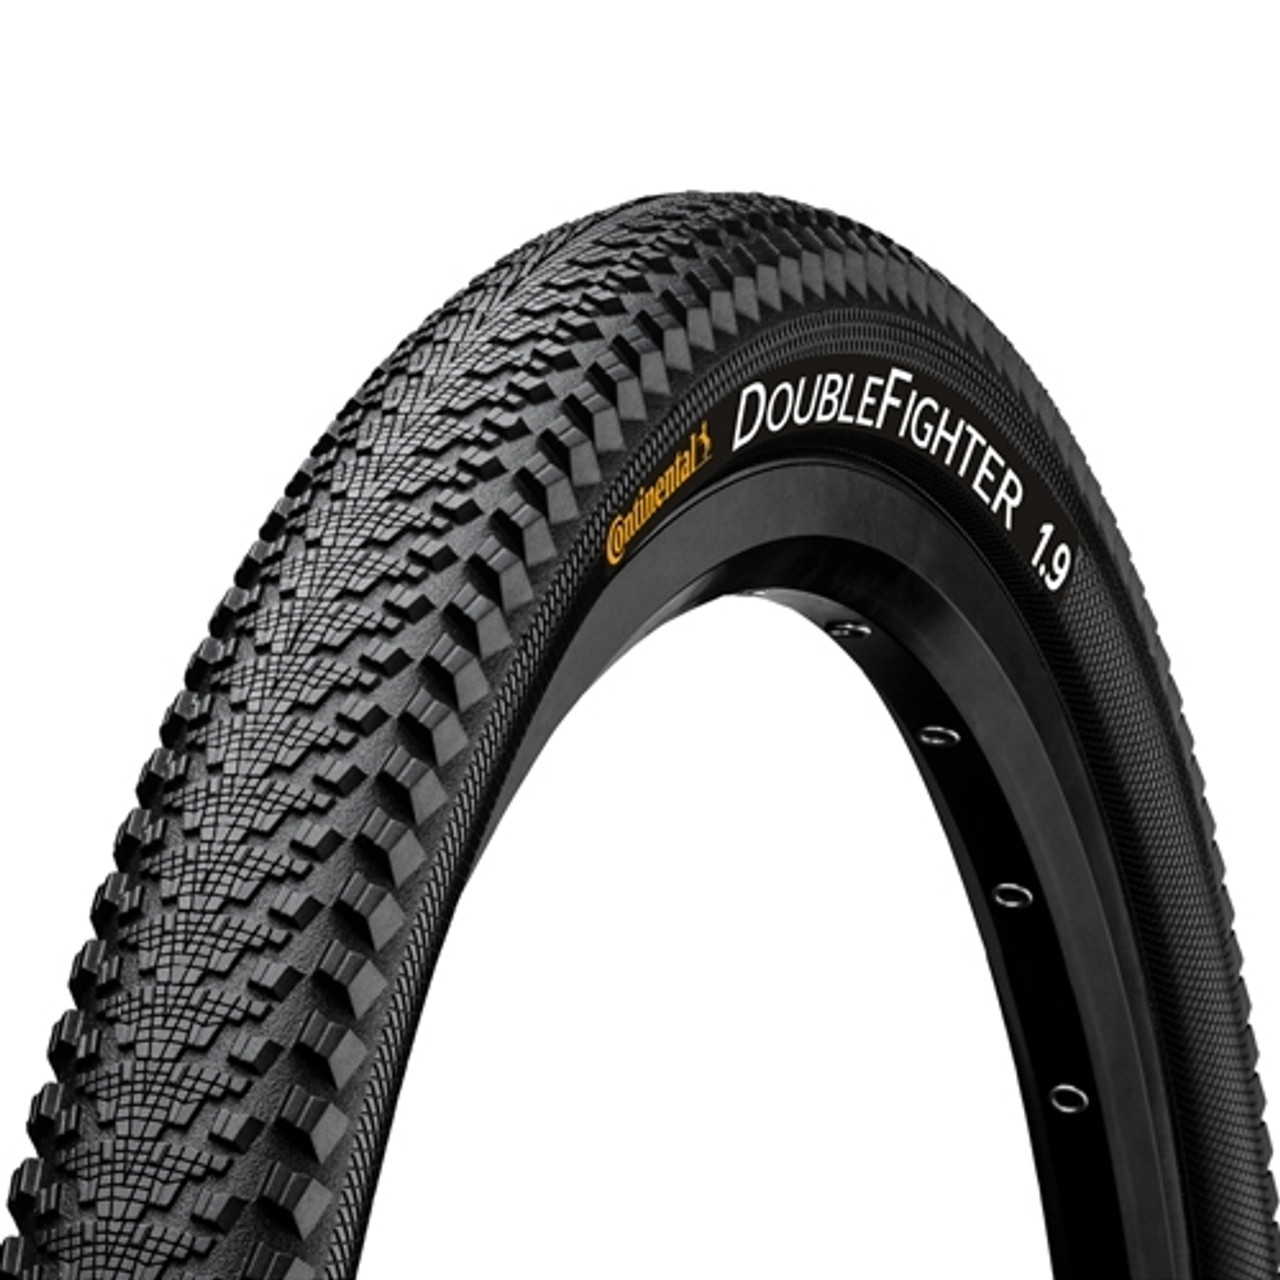 Continental Double Fighter III Rigid Commuter MTB Tyre